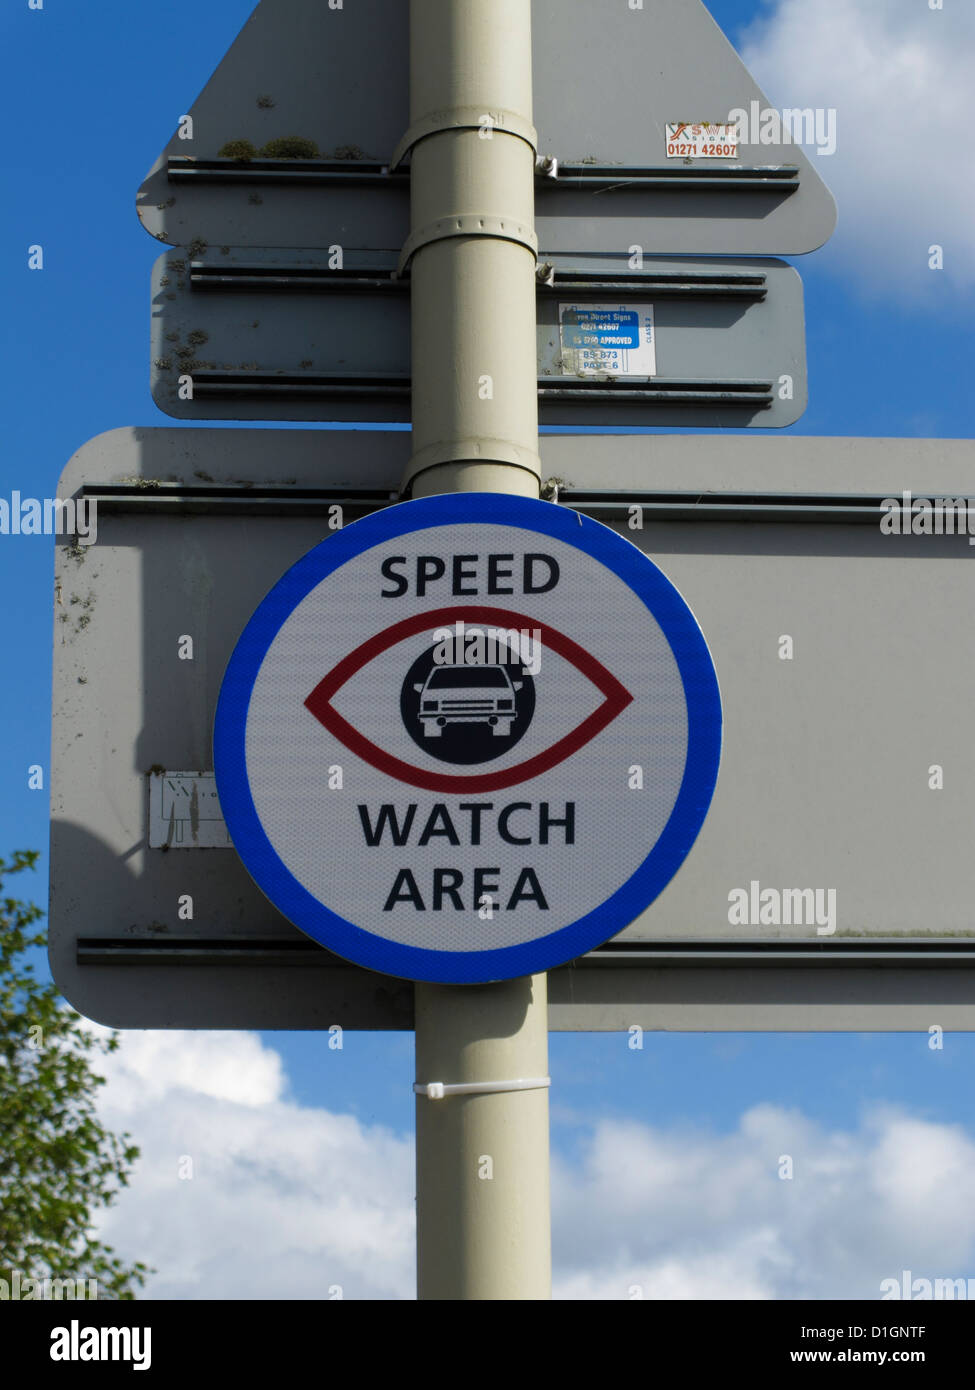 Speed Watch Area sign UK community speed reduction campaign program programme - Stock Image